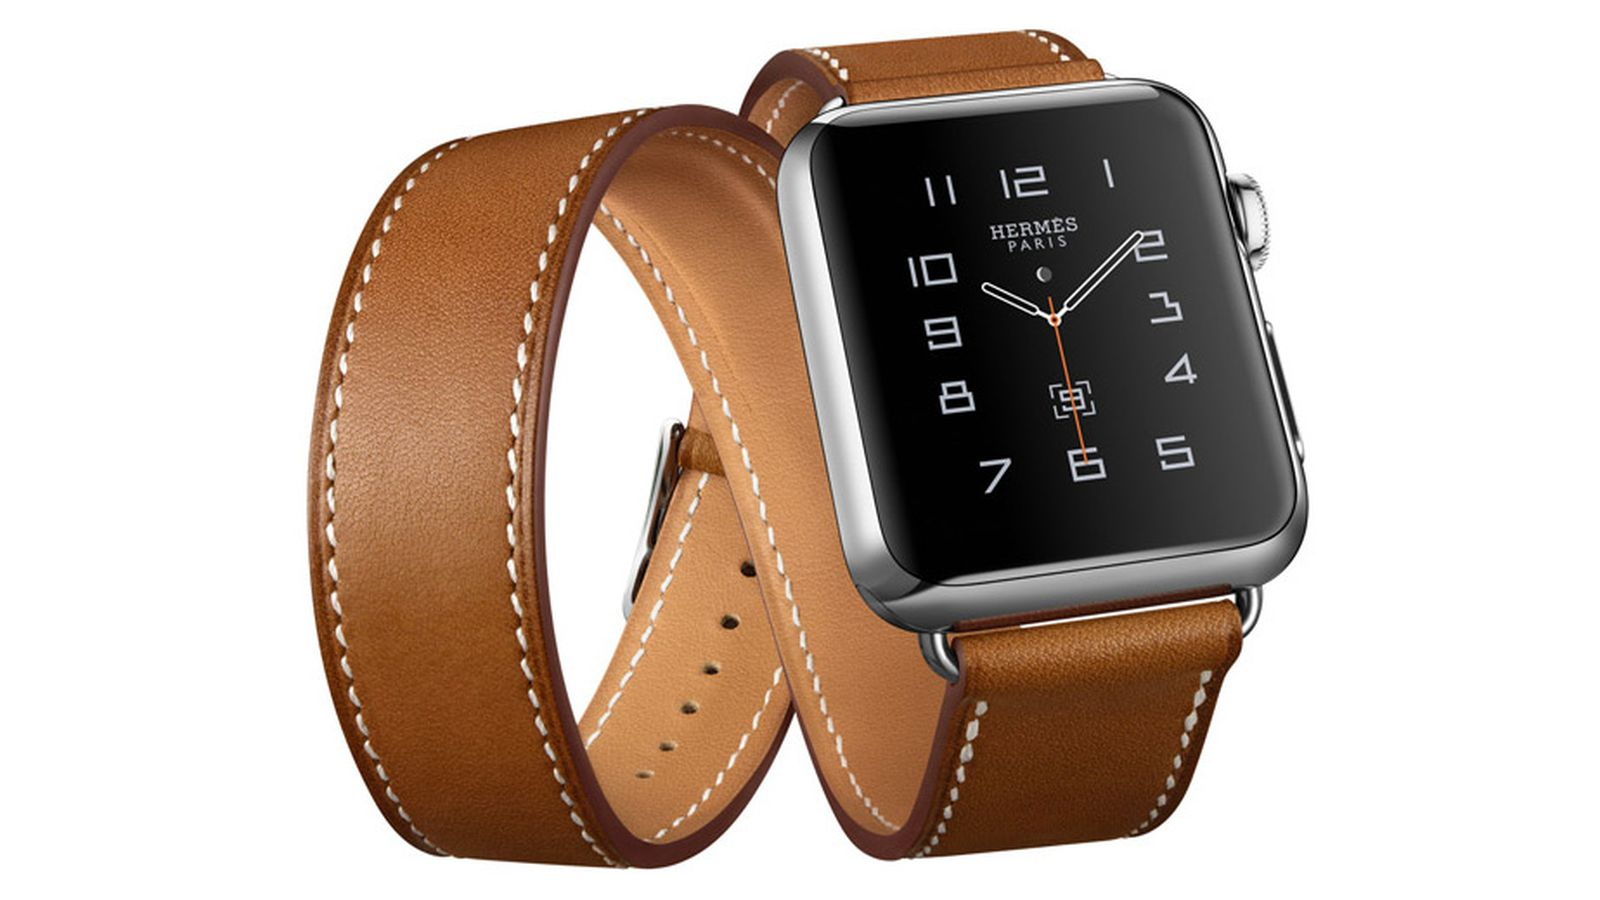 how much does a hermes birkin bag cost - The Apple Watch Herm��s is now available | The Verge